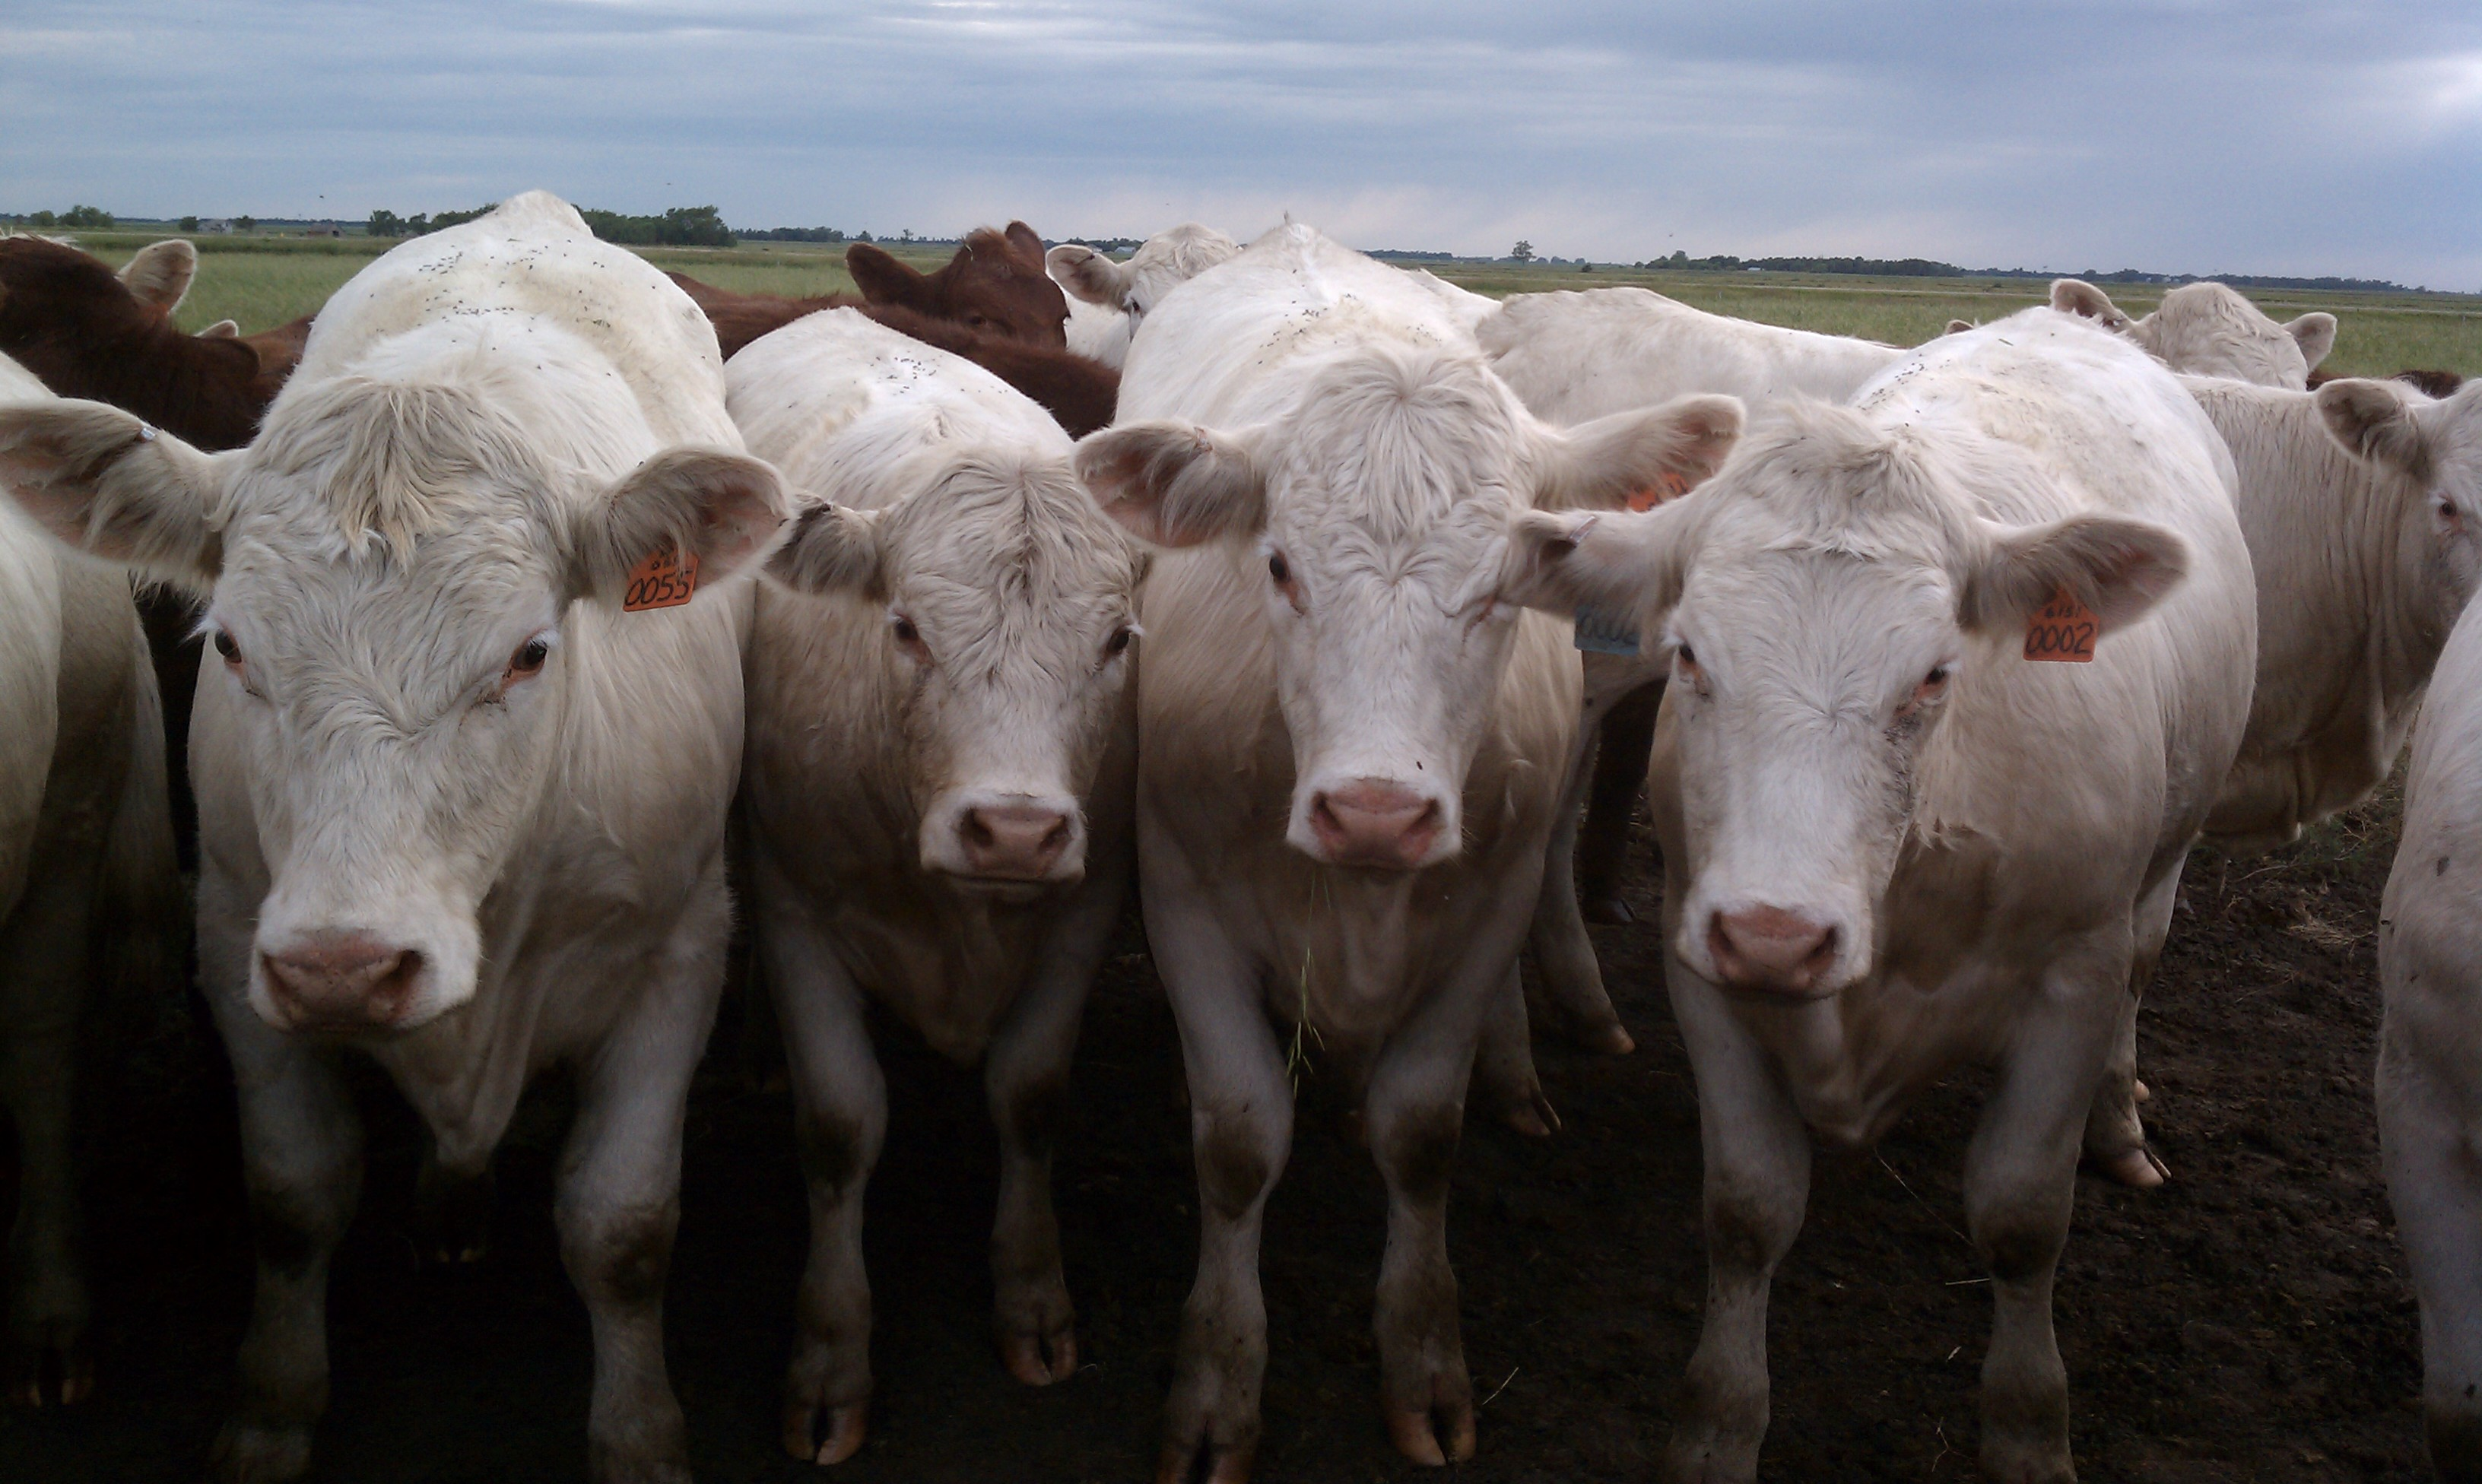 A group of white cows all looking towards the camera